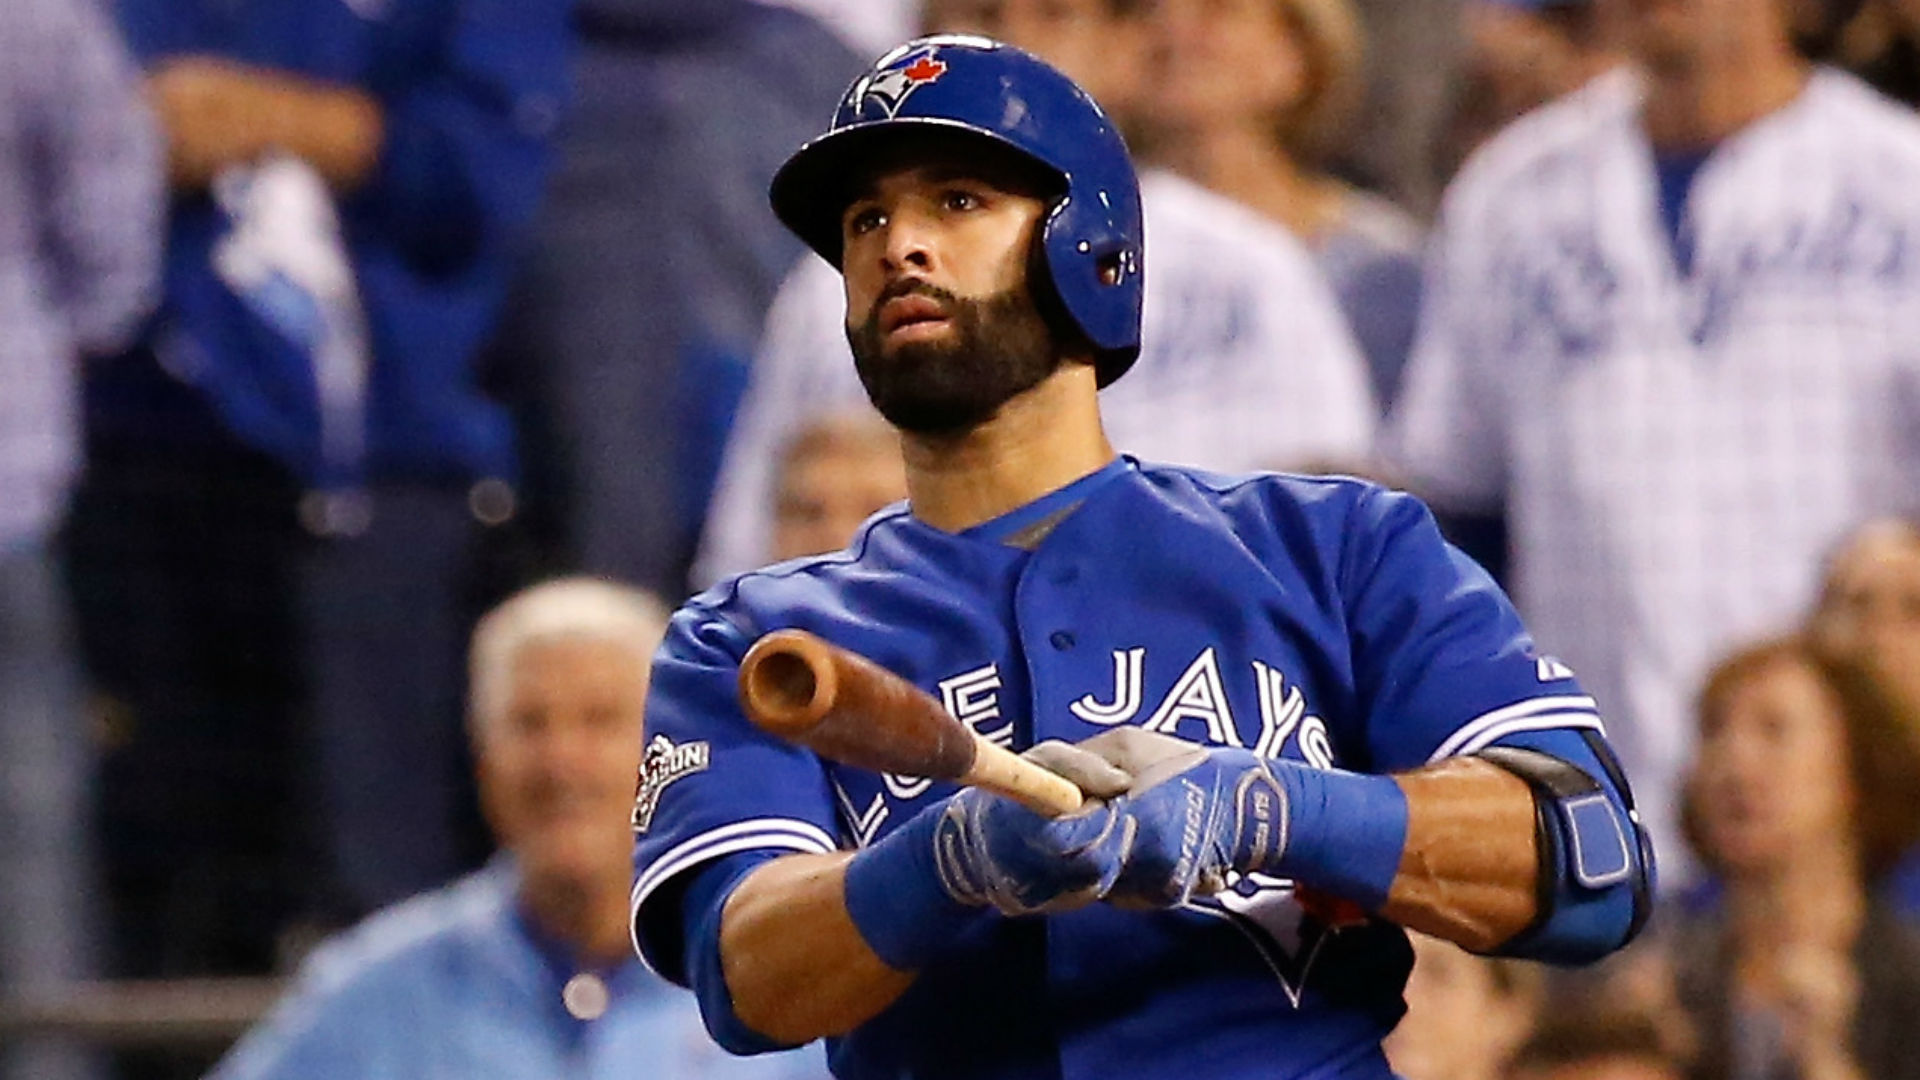 jose-bautista-120715-getty-ftr-us.jpg